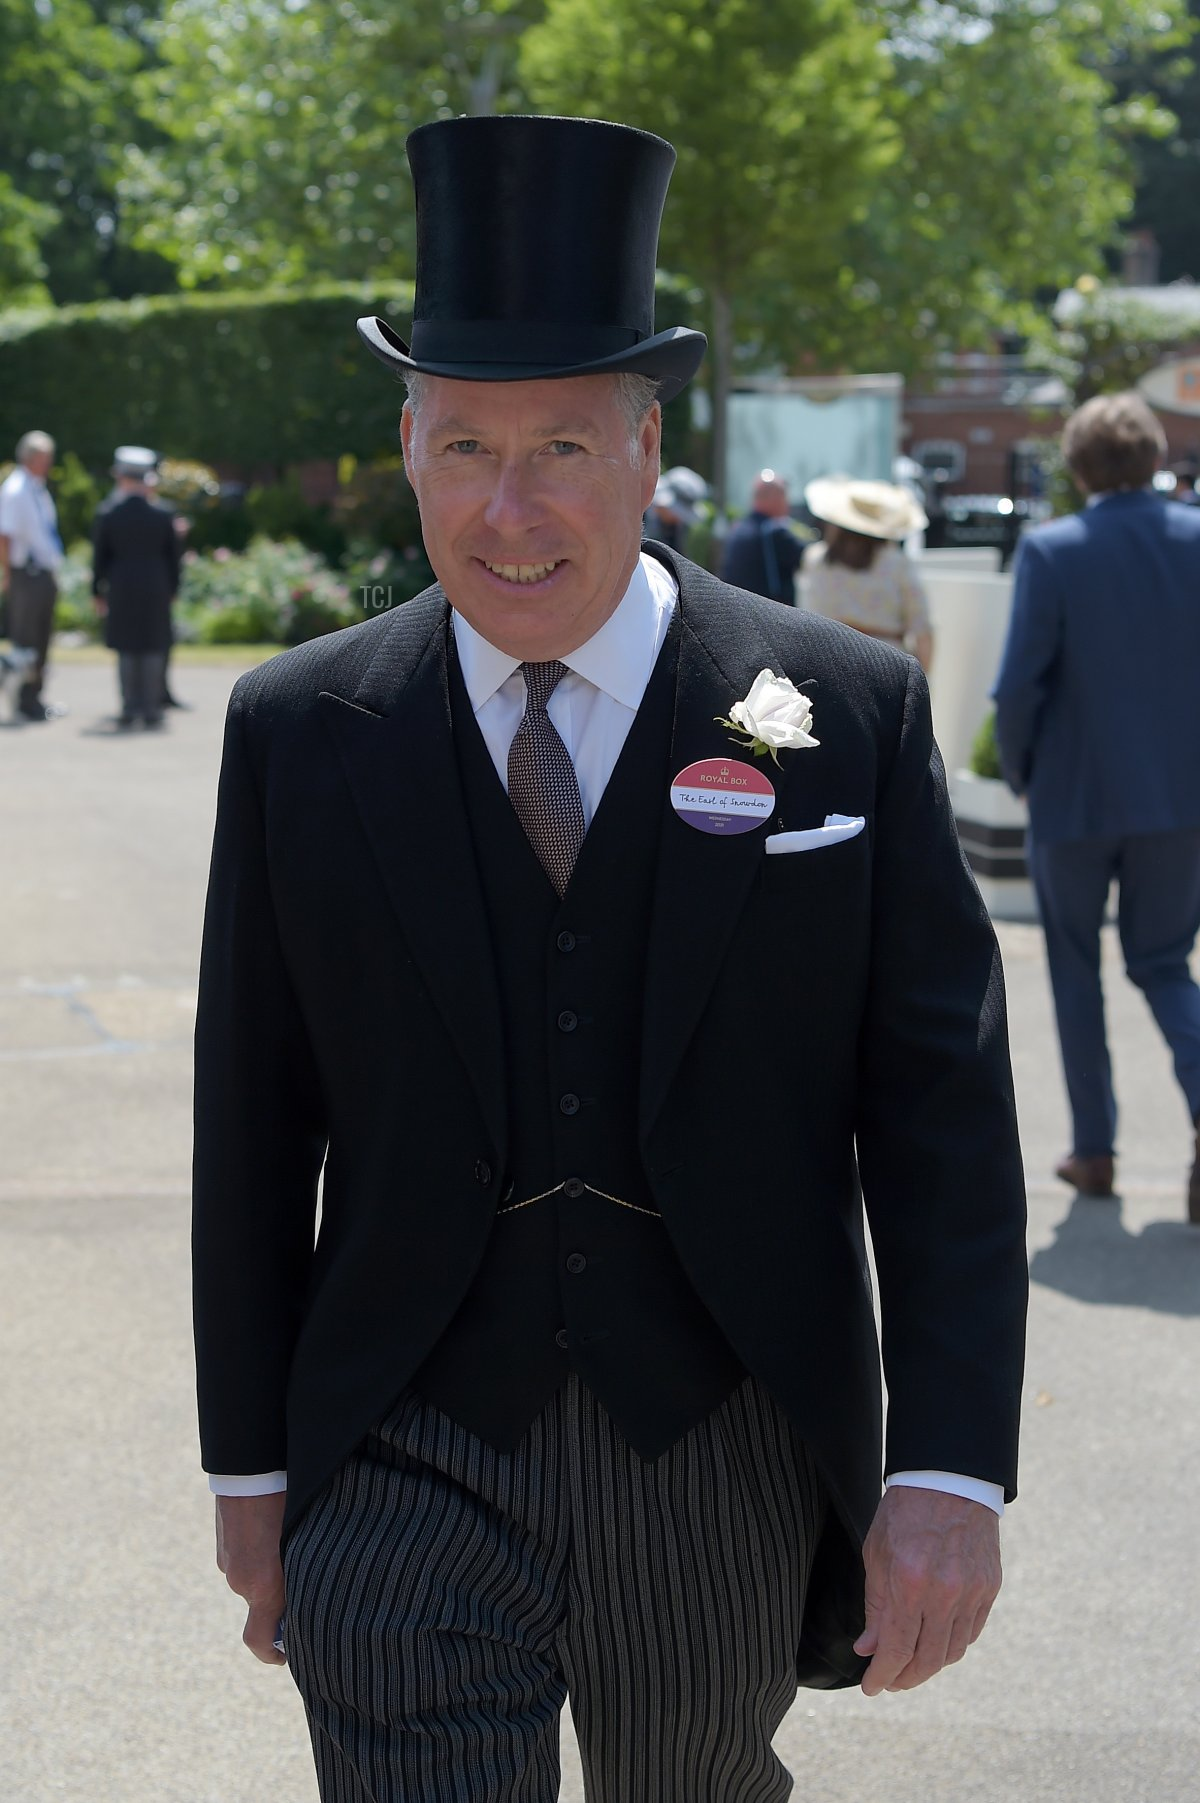 David Armstrong-Jones, 2nd Earl of Snowdon arrives at Royal Ascot 2021 at Ascot Racecourse on June 16, 2021 in Ascot, England